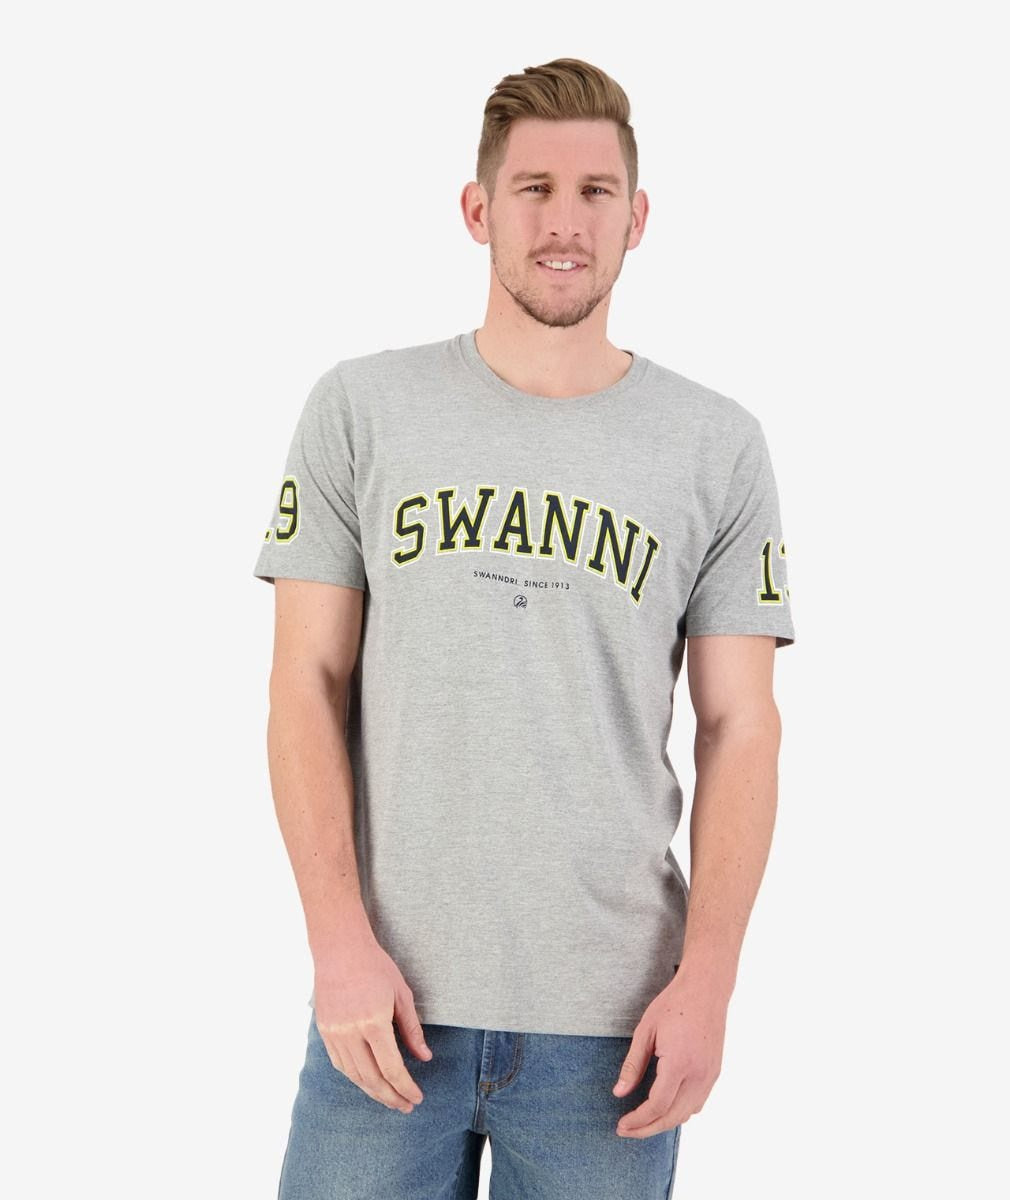 Mens Swanni Print Tee (Grey Marle/Black)